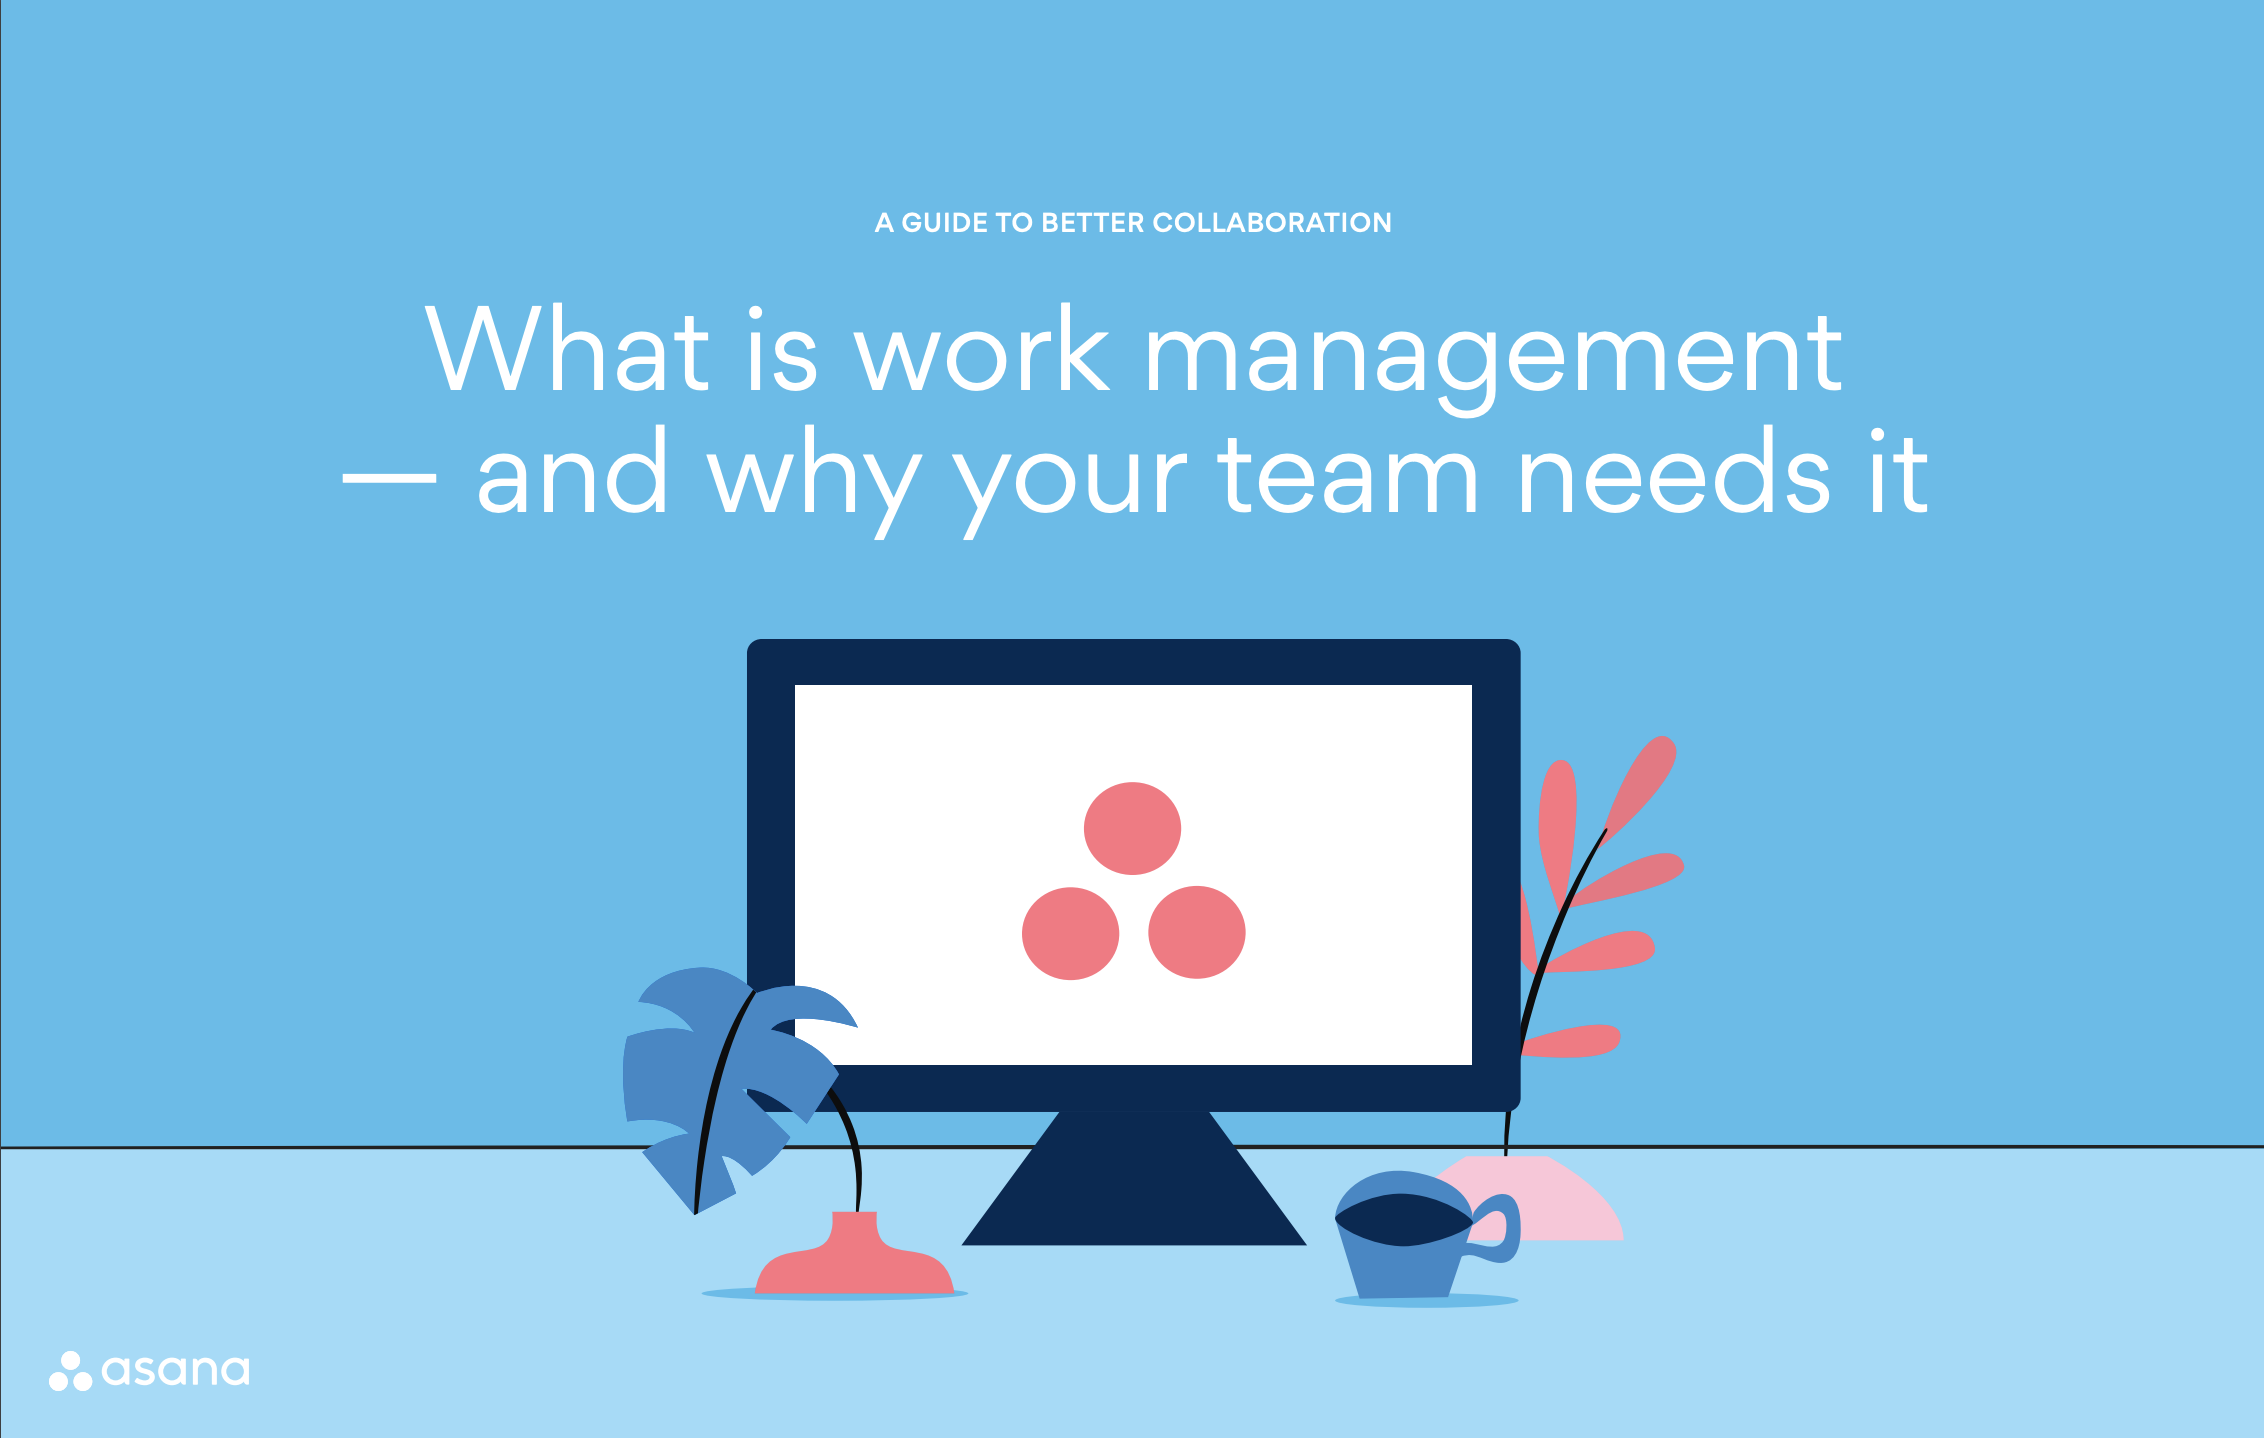 Asana - What is work management and why your team needs it Ebook - Cover